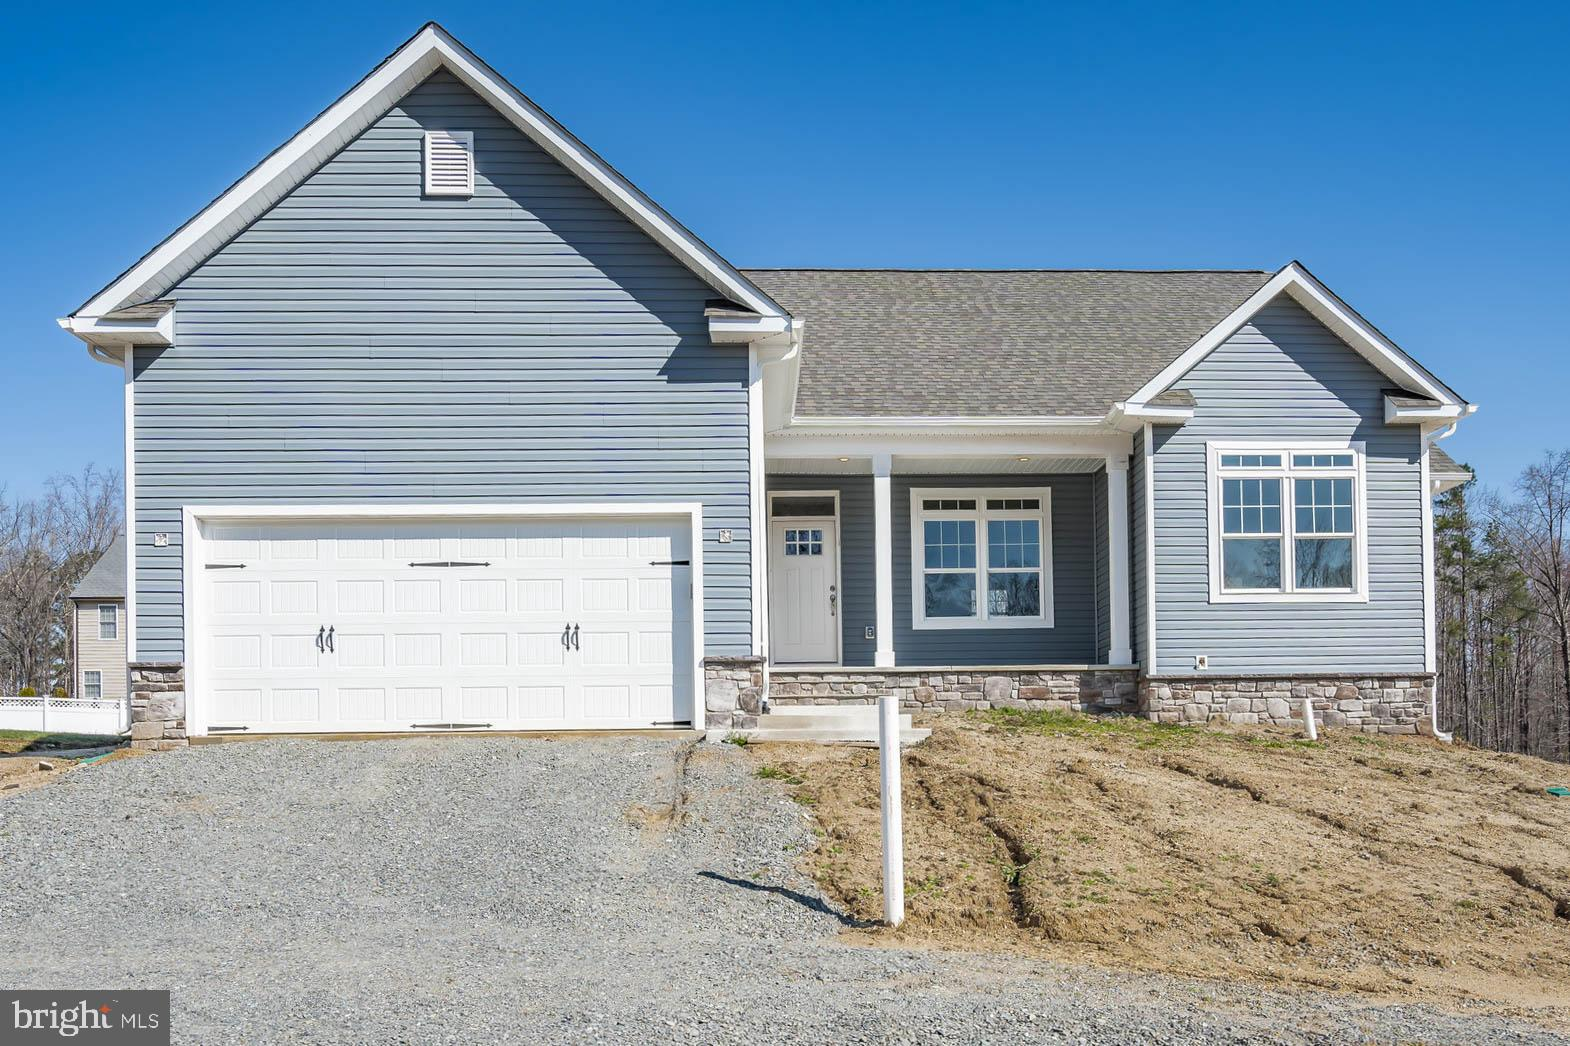 17491 COOLIDGE LANE, BOWLING GREEN, VA 22427